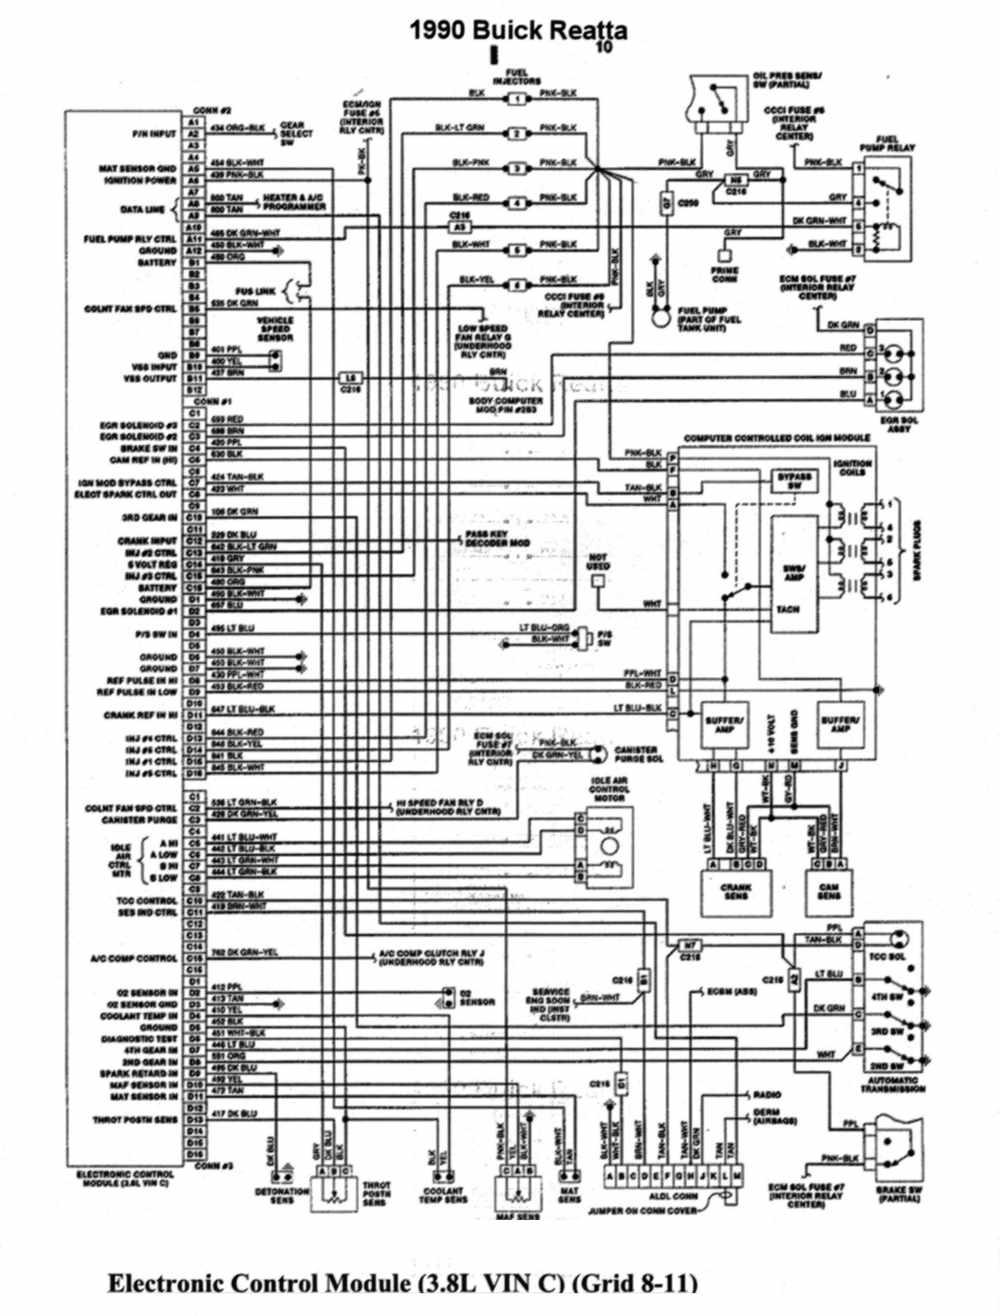 1995 Buick Riviera Fuse Diagram Not Lossing Wiring 1996 Lesabre Box Location Diagrams Electrical Rh 21 Lowrysdriedmeat De 1993